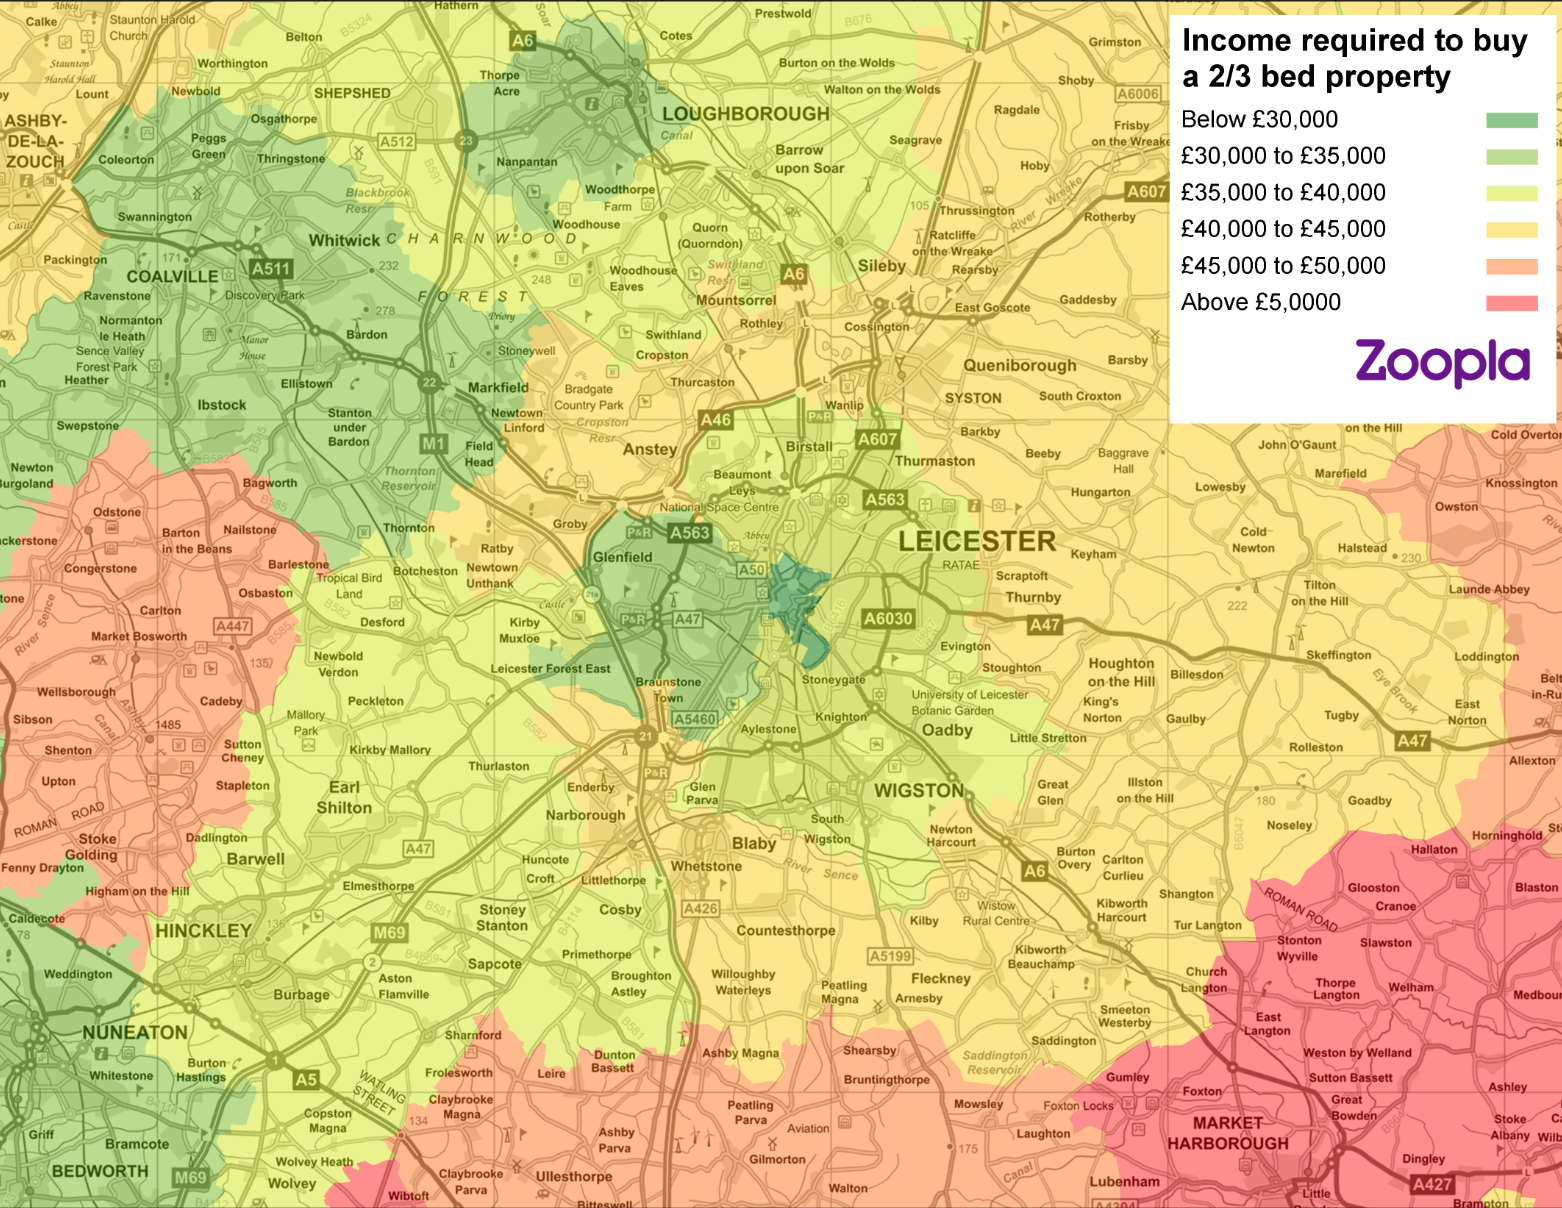 Map showing most affordable places for first-time buyers to live in Leicester